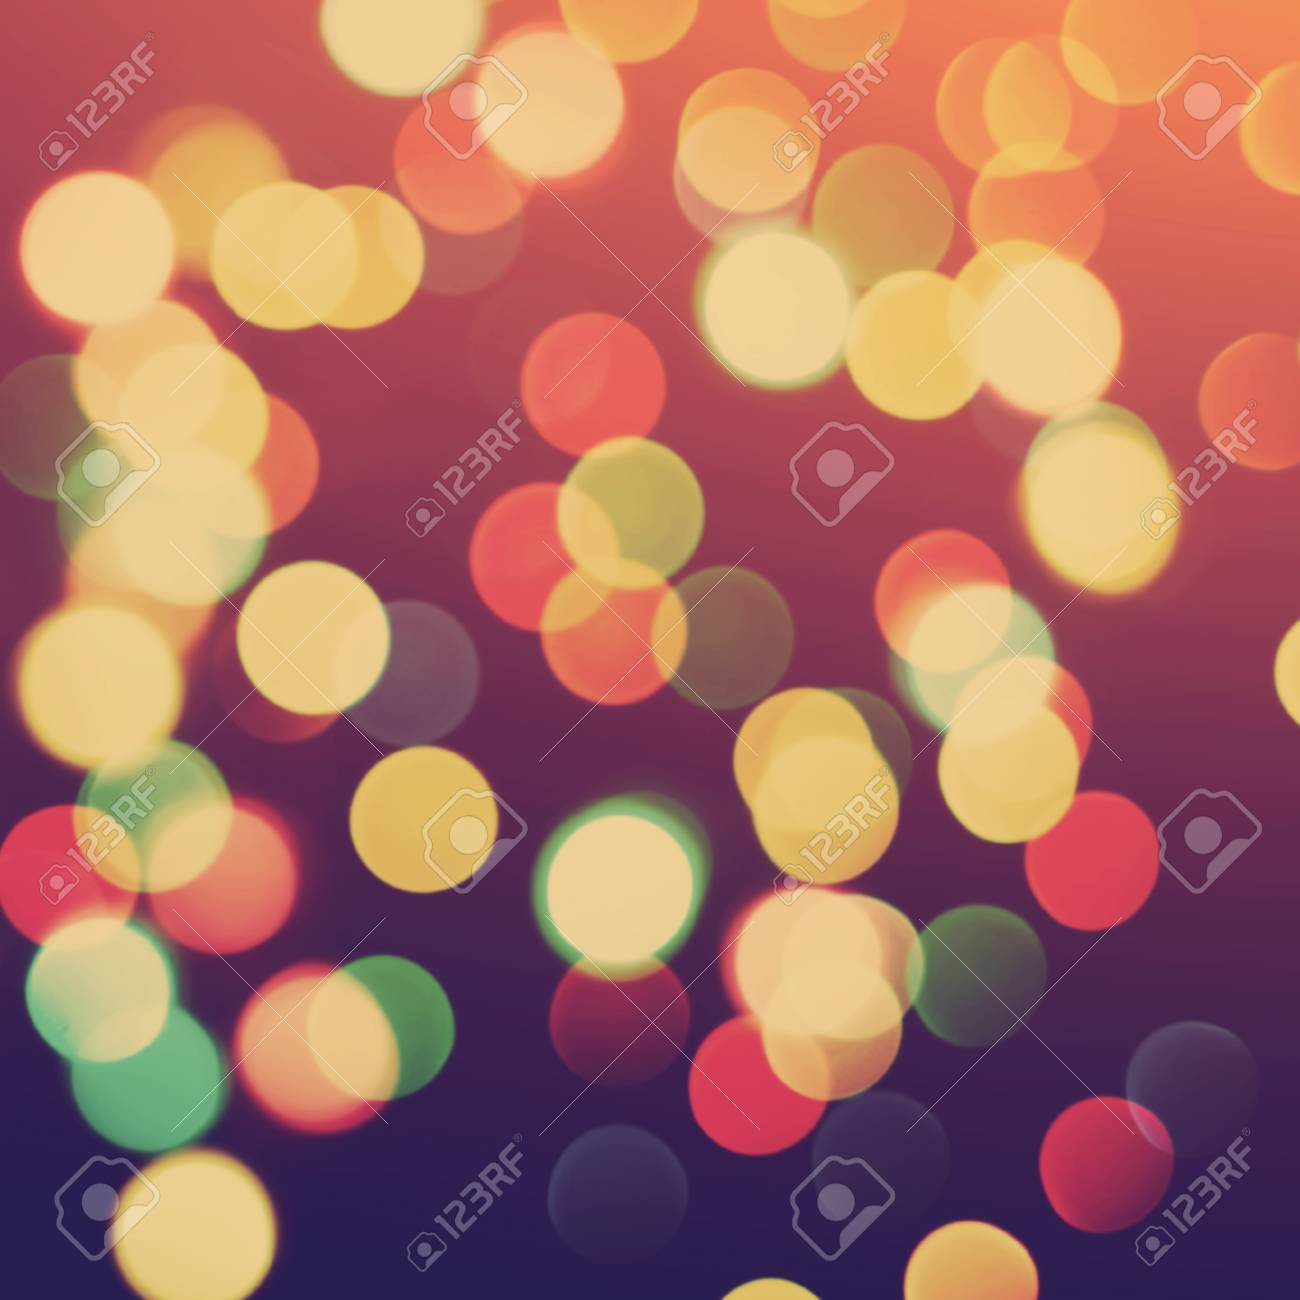 multicolored blurred christmas lights colorful background bokeh vintage greeting card stock photo 48055139 - Blurred Christmas Lights